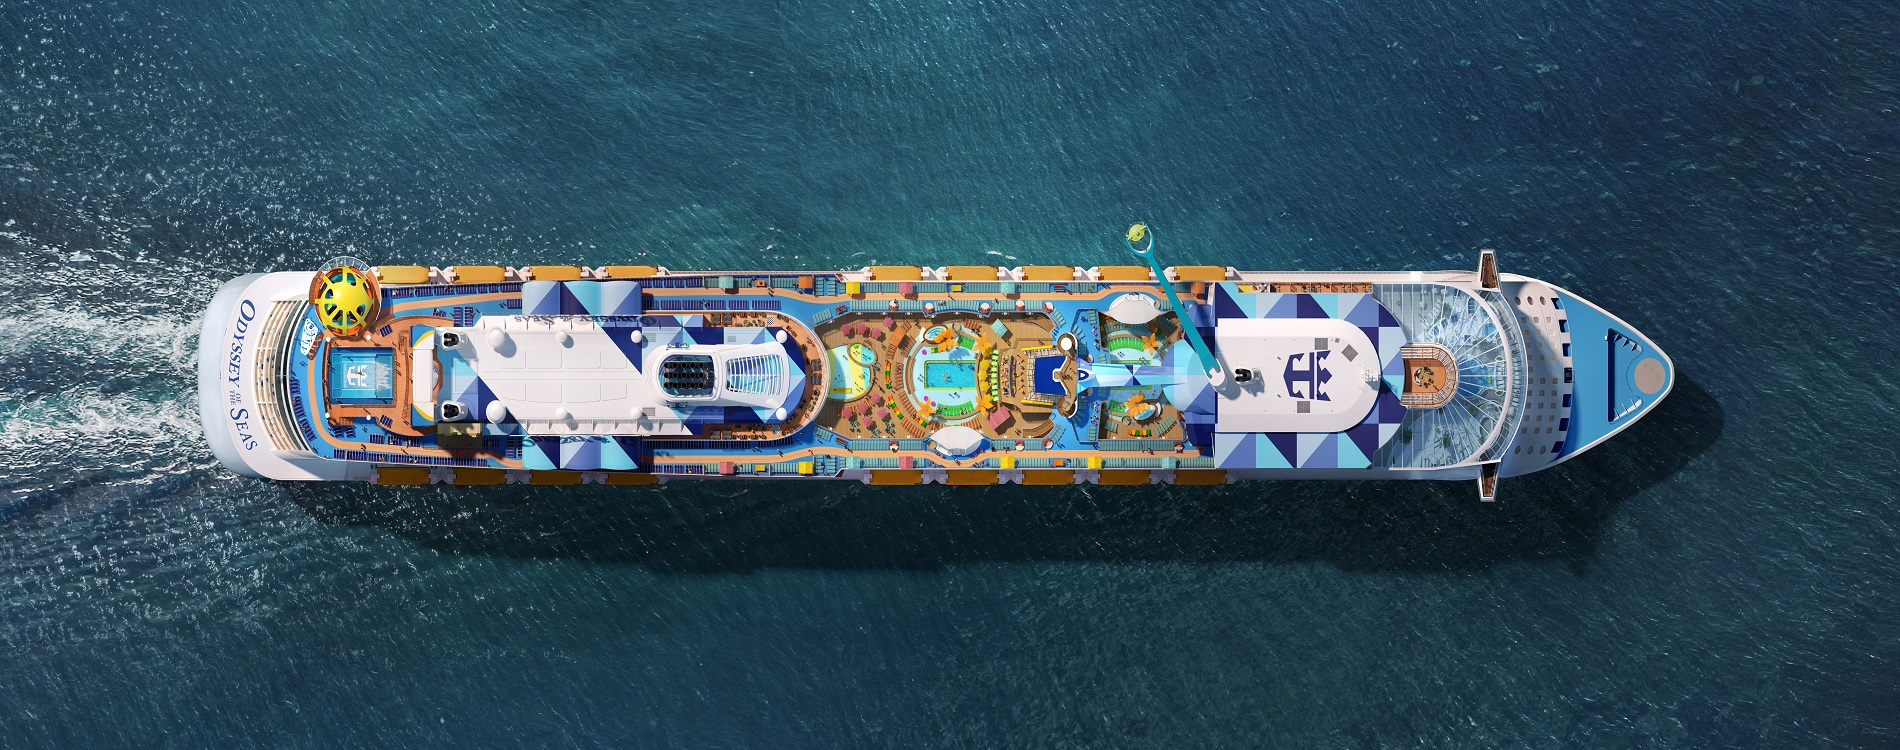 odyssey-of-the-seas-banner